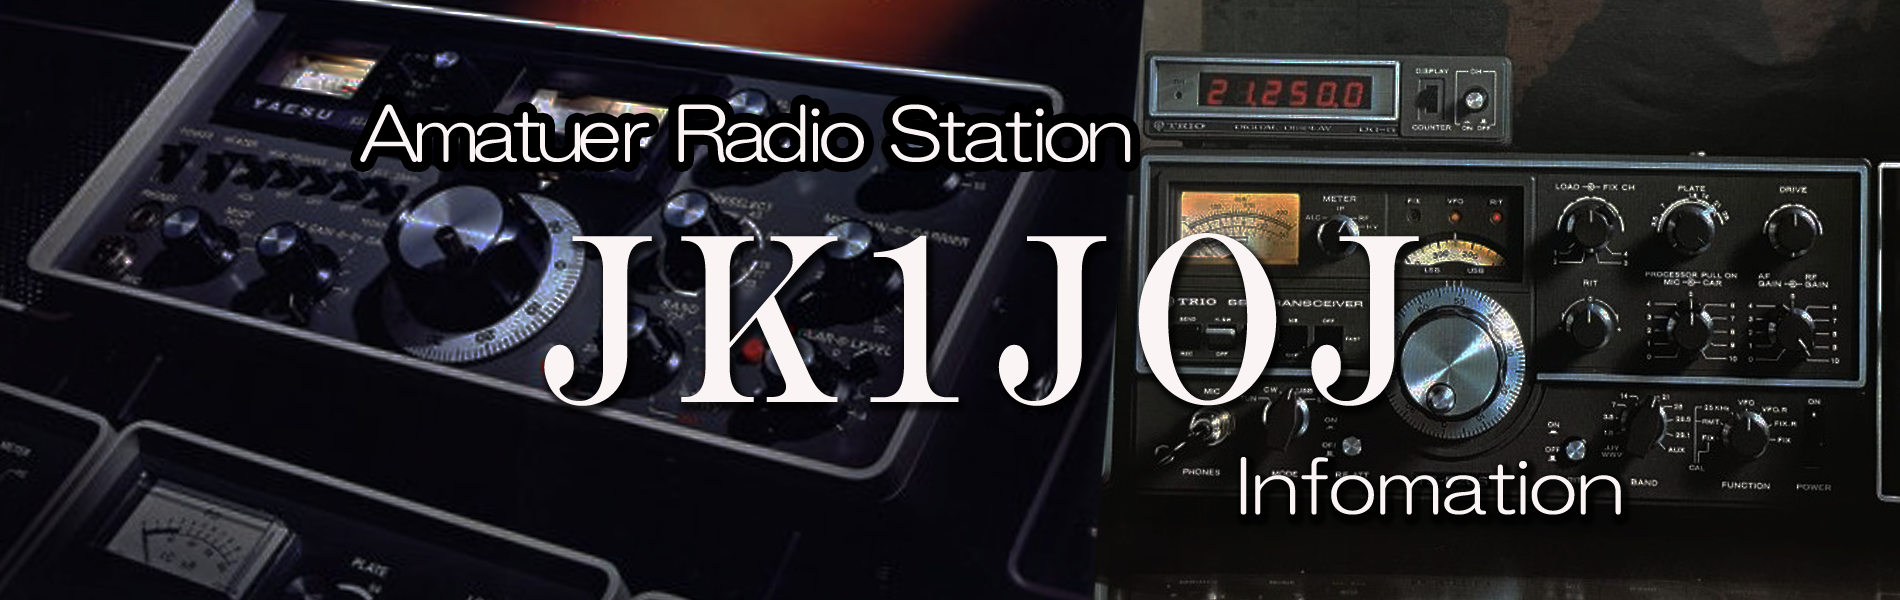 Amatuer Radio Station JK1JOJ infomation